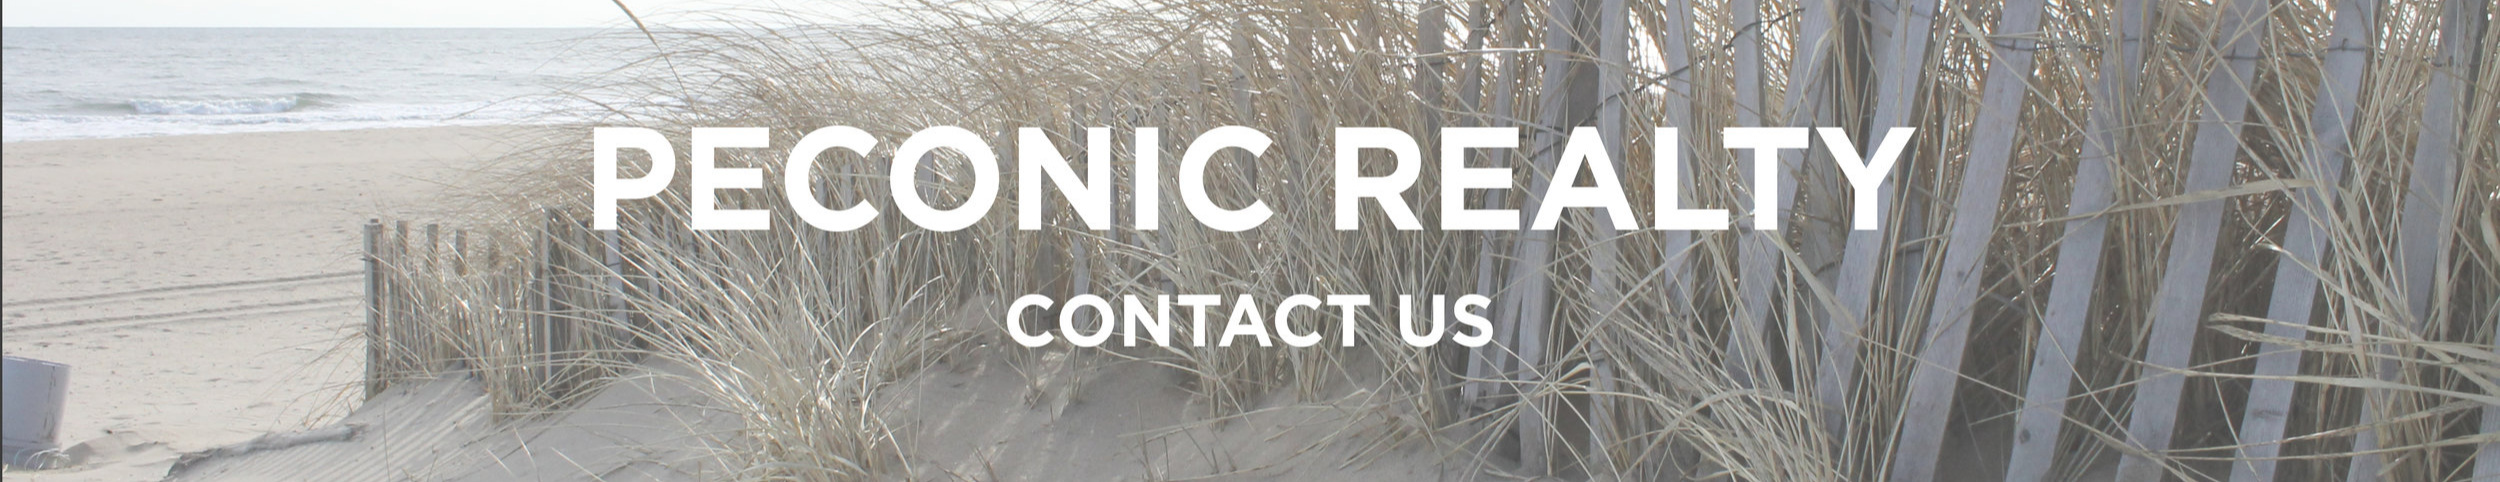 Peconic+Realty+CONTACT+US.jpg